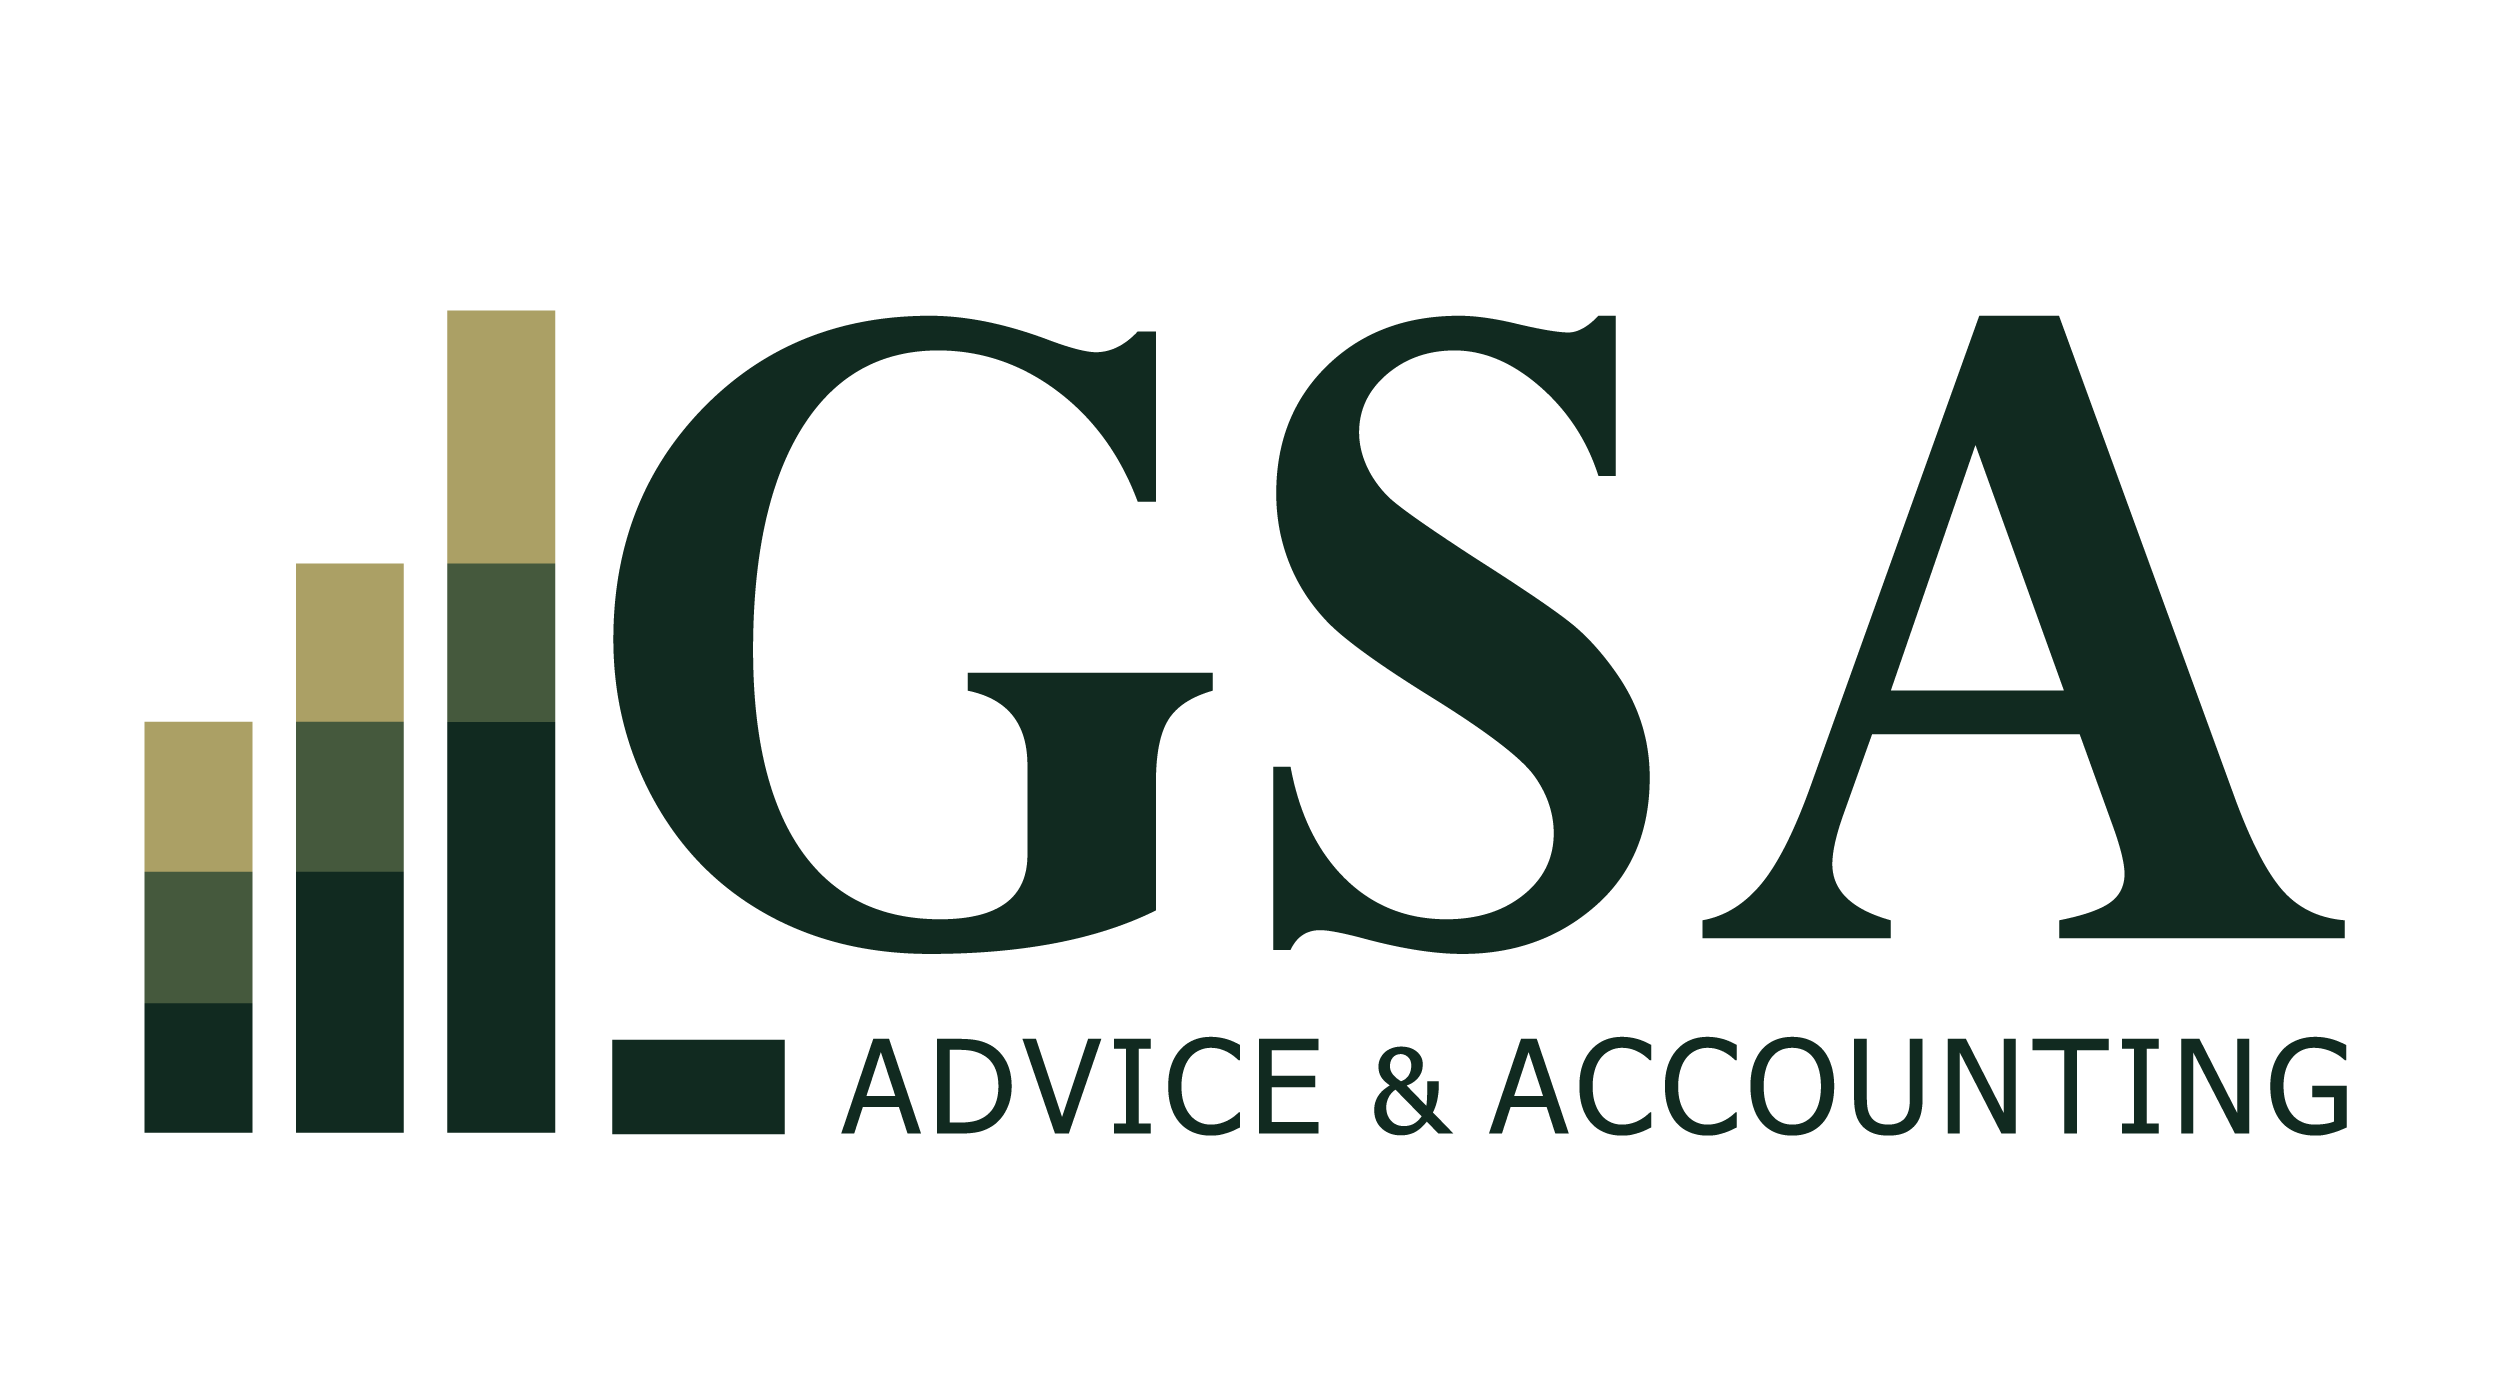 GSA Advice